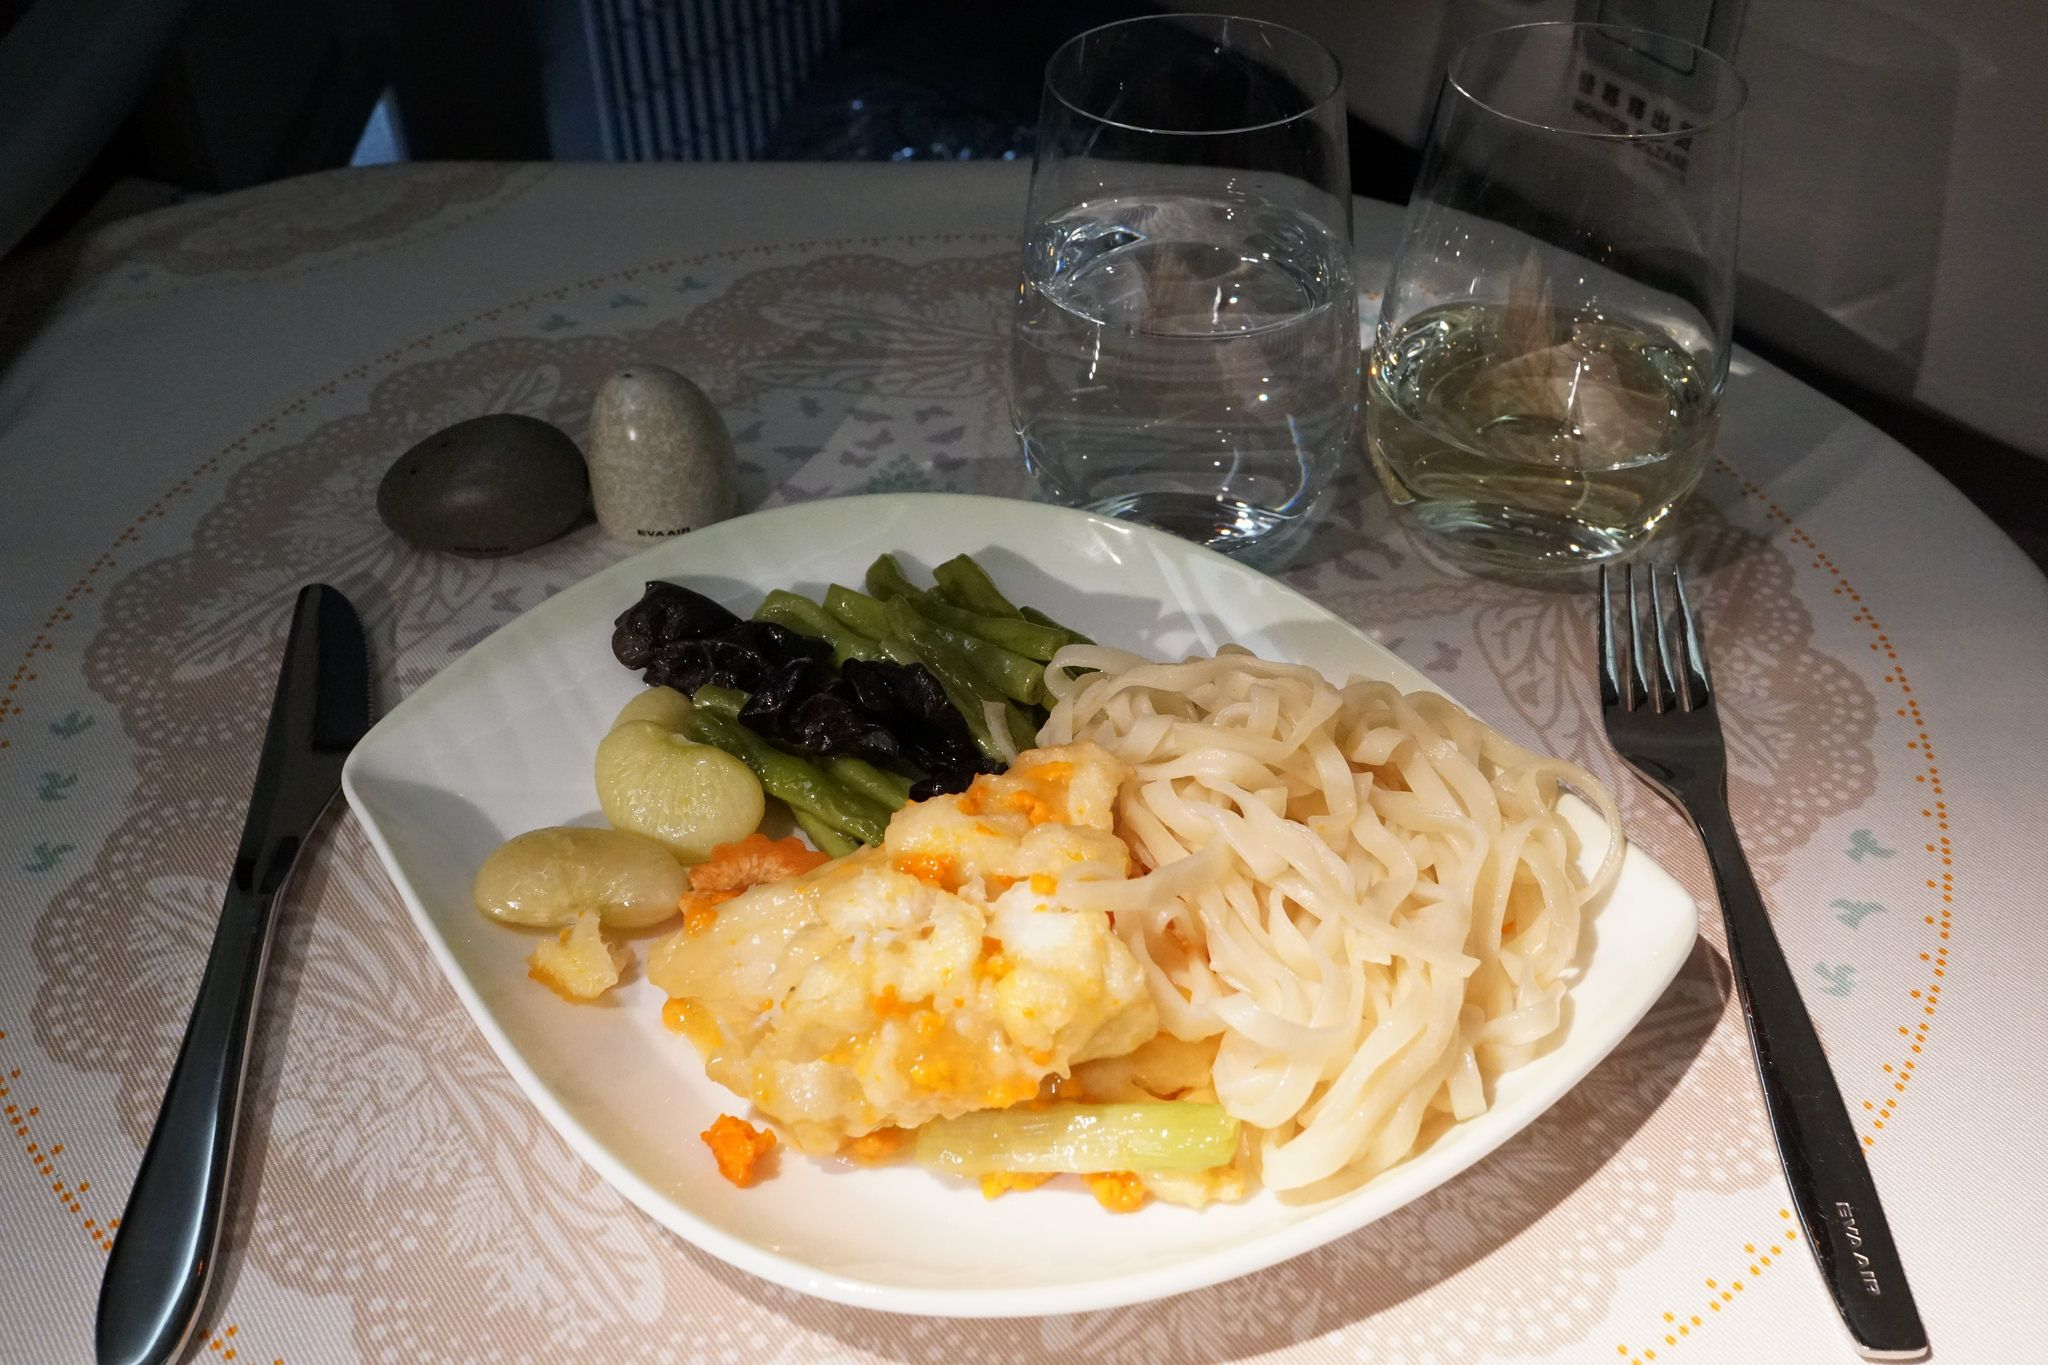 EVA Air Meal (With images) Air meal, Meals, Airline food